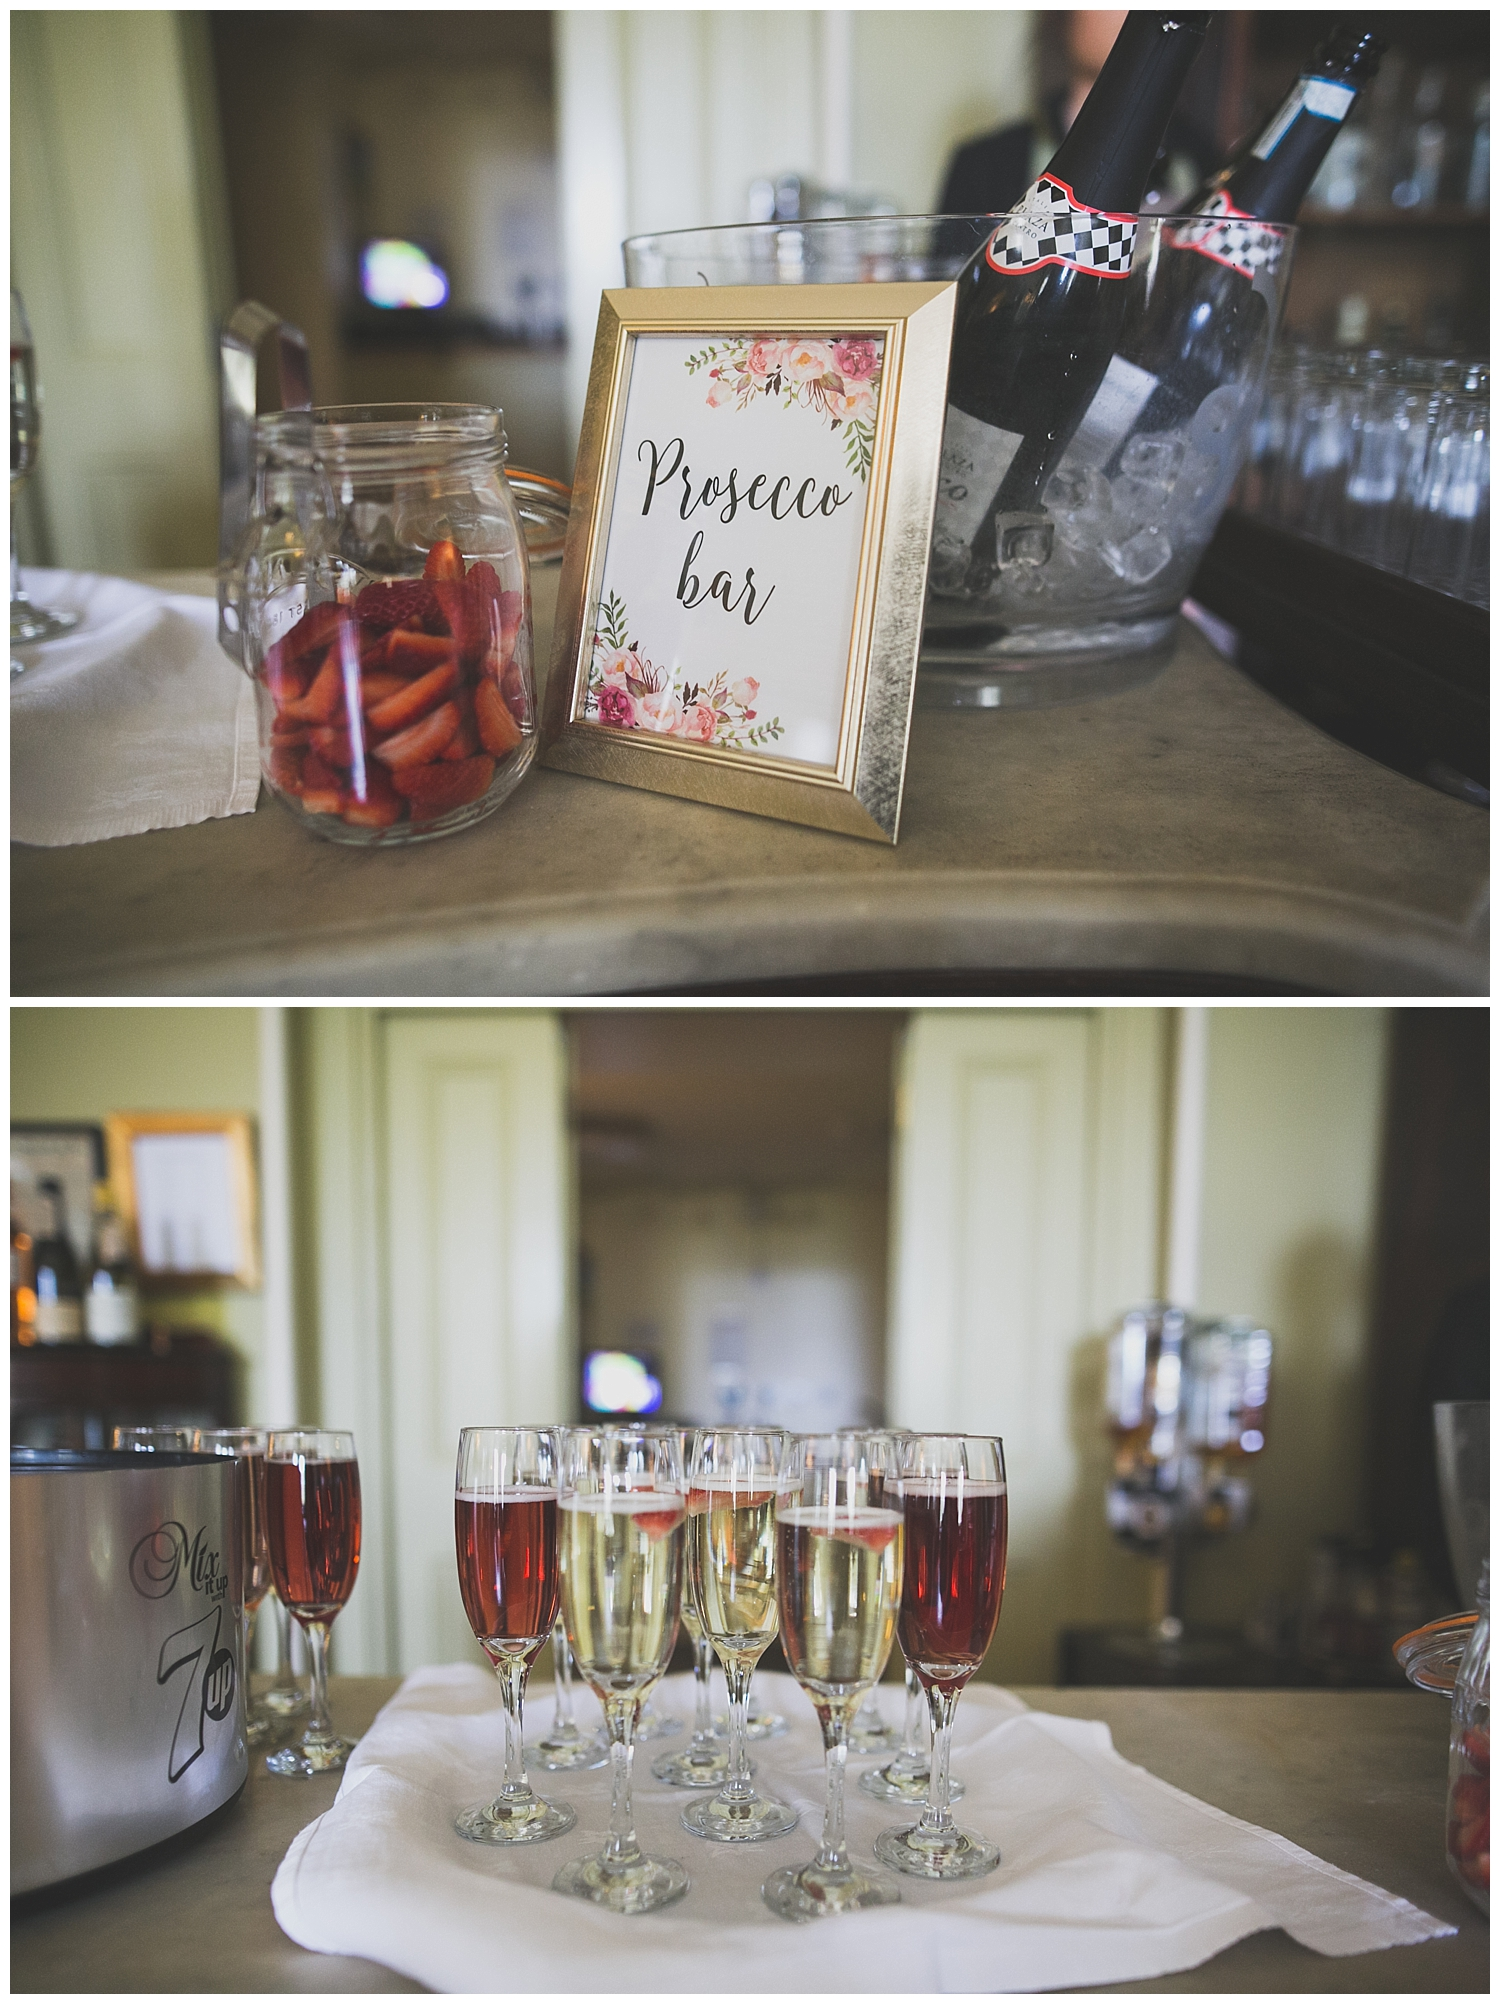 prosecco bar sign at wedding